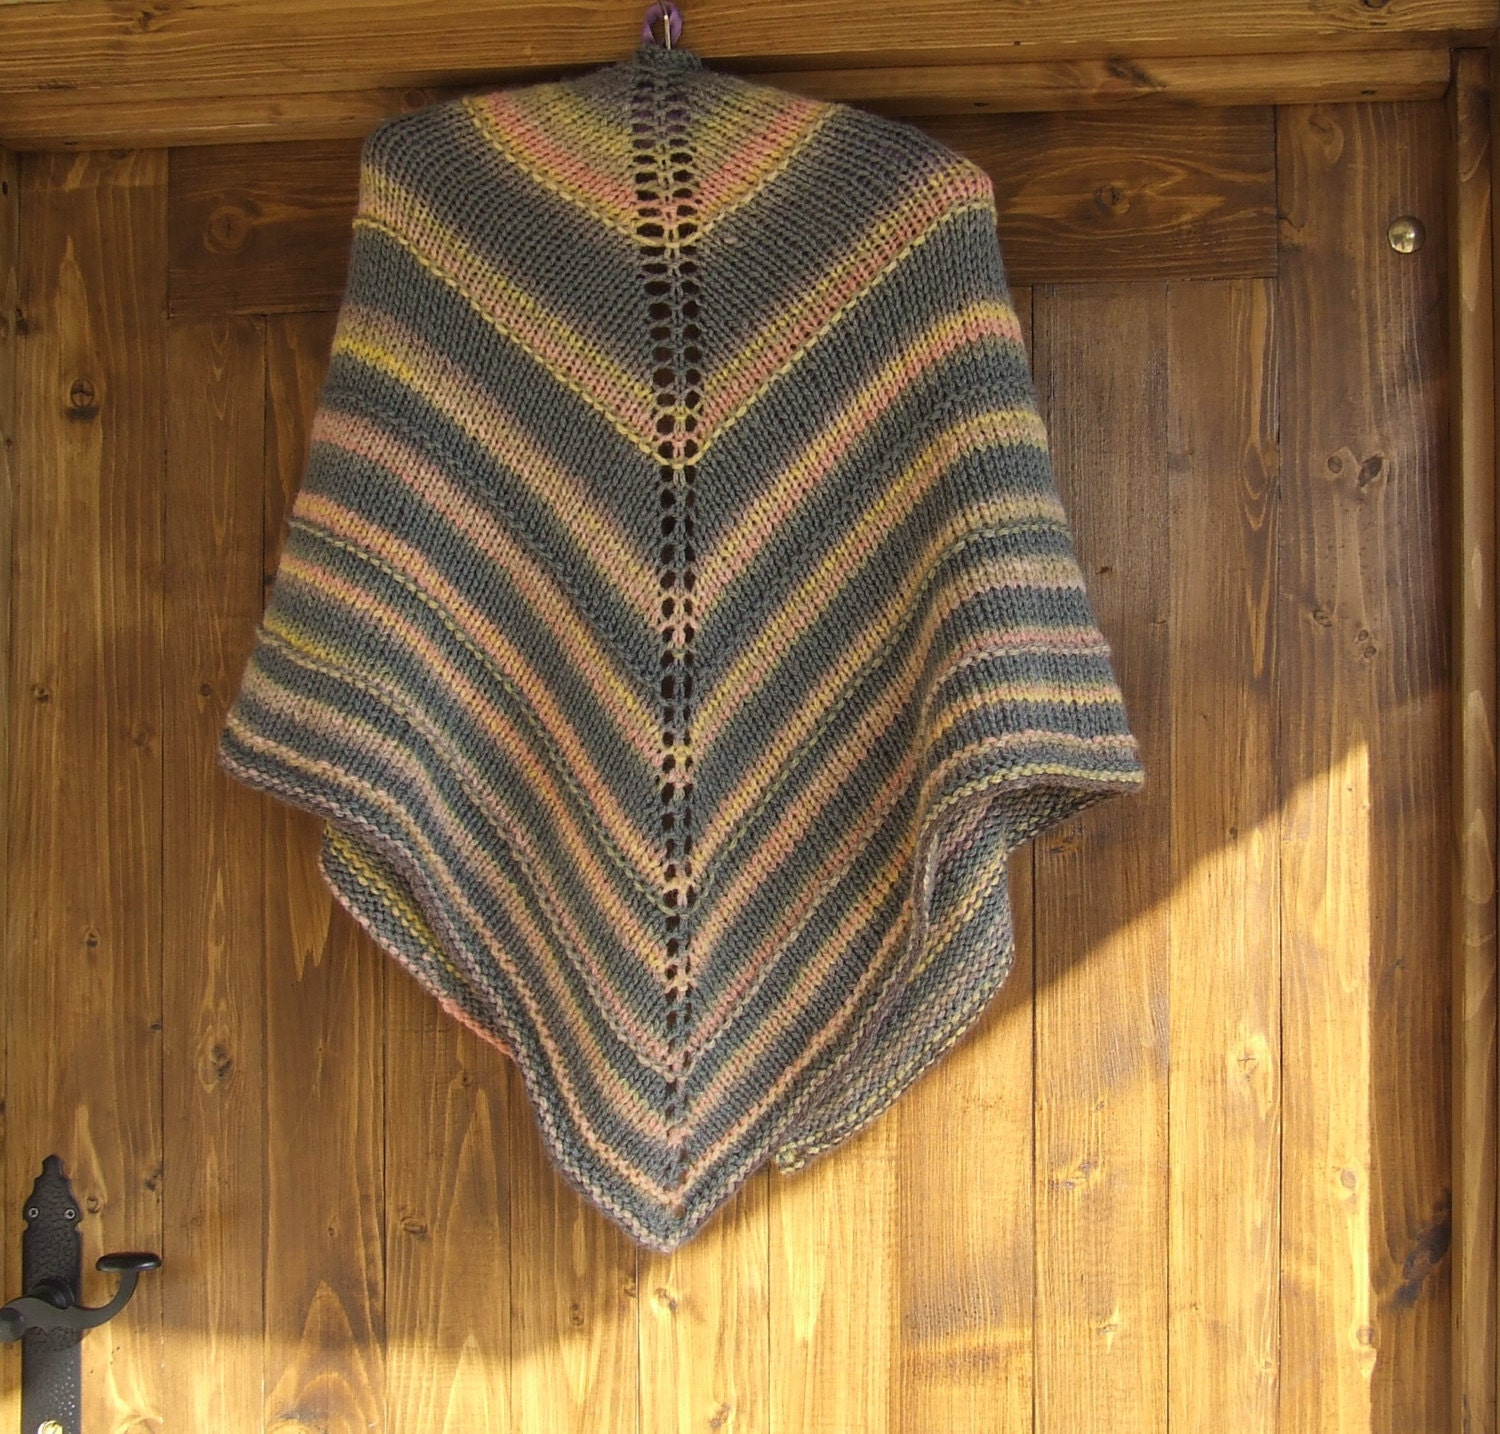 Knitted Triangle Shawl Pattern : Hand knitted triangle shawl Multi colour knitted wrap Hand